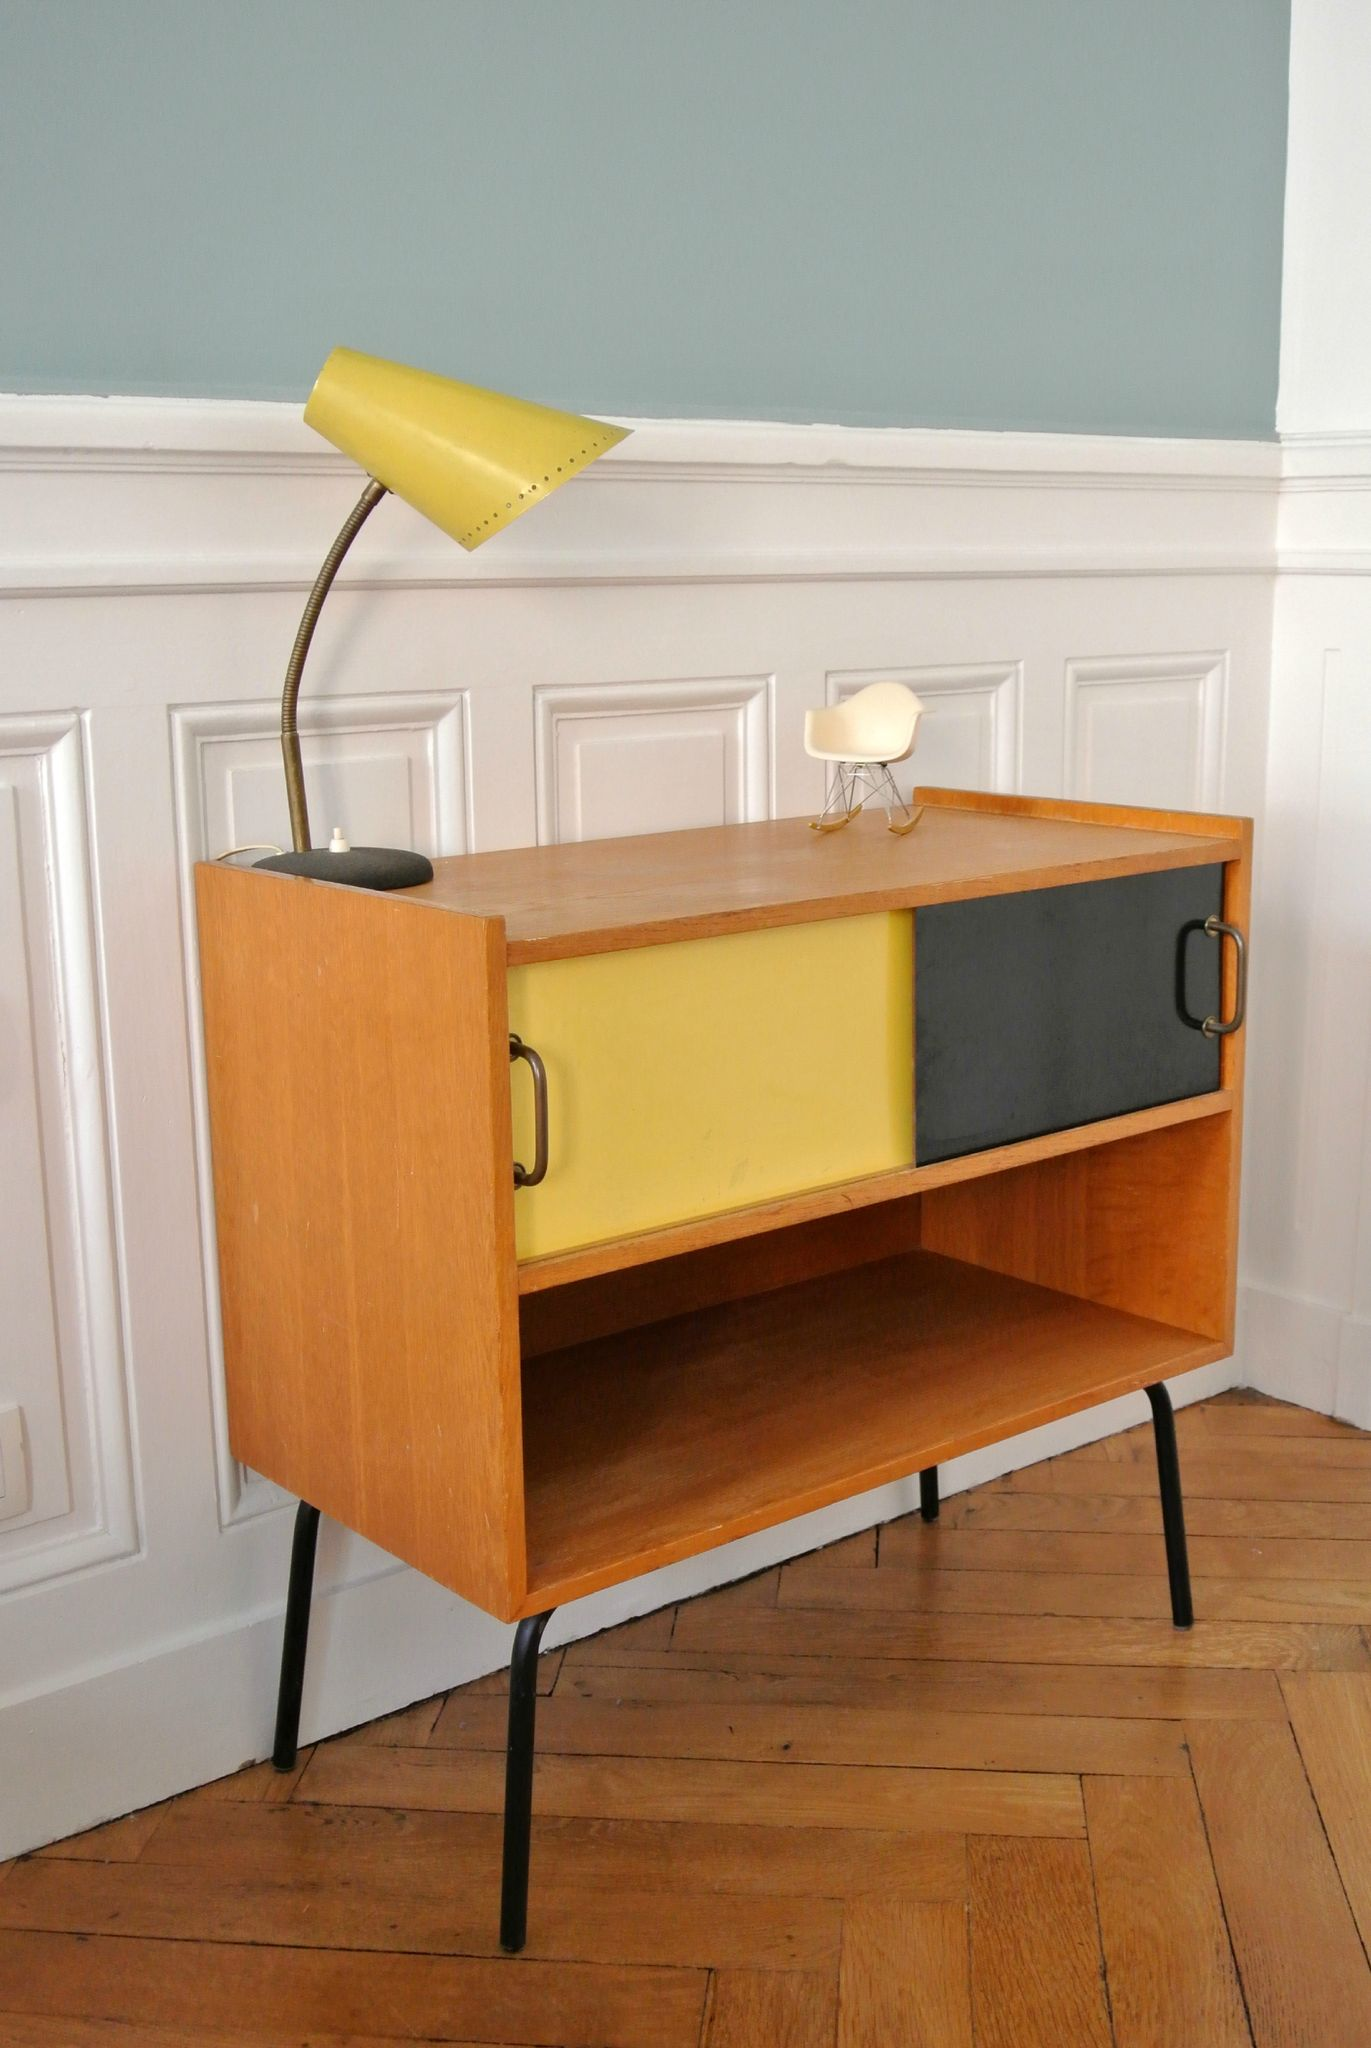 Meuble d 39 appoint ann es 50 solveig vintage kids for Meuble bureau annee 50